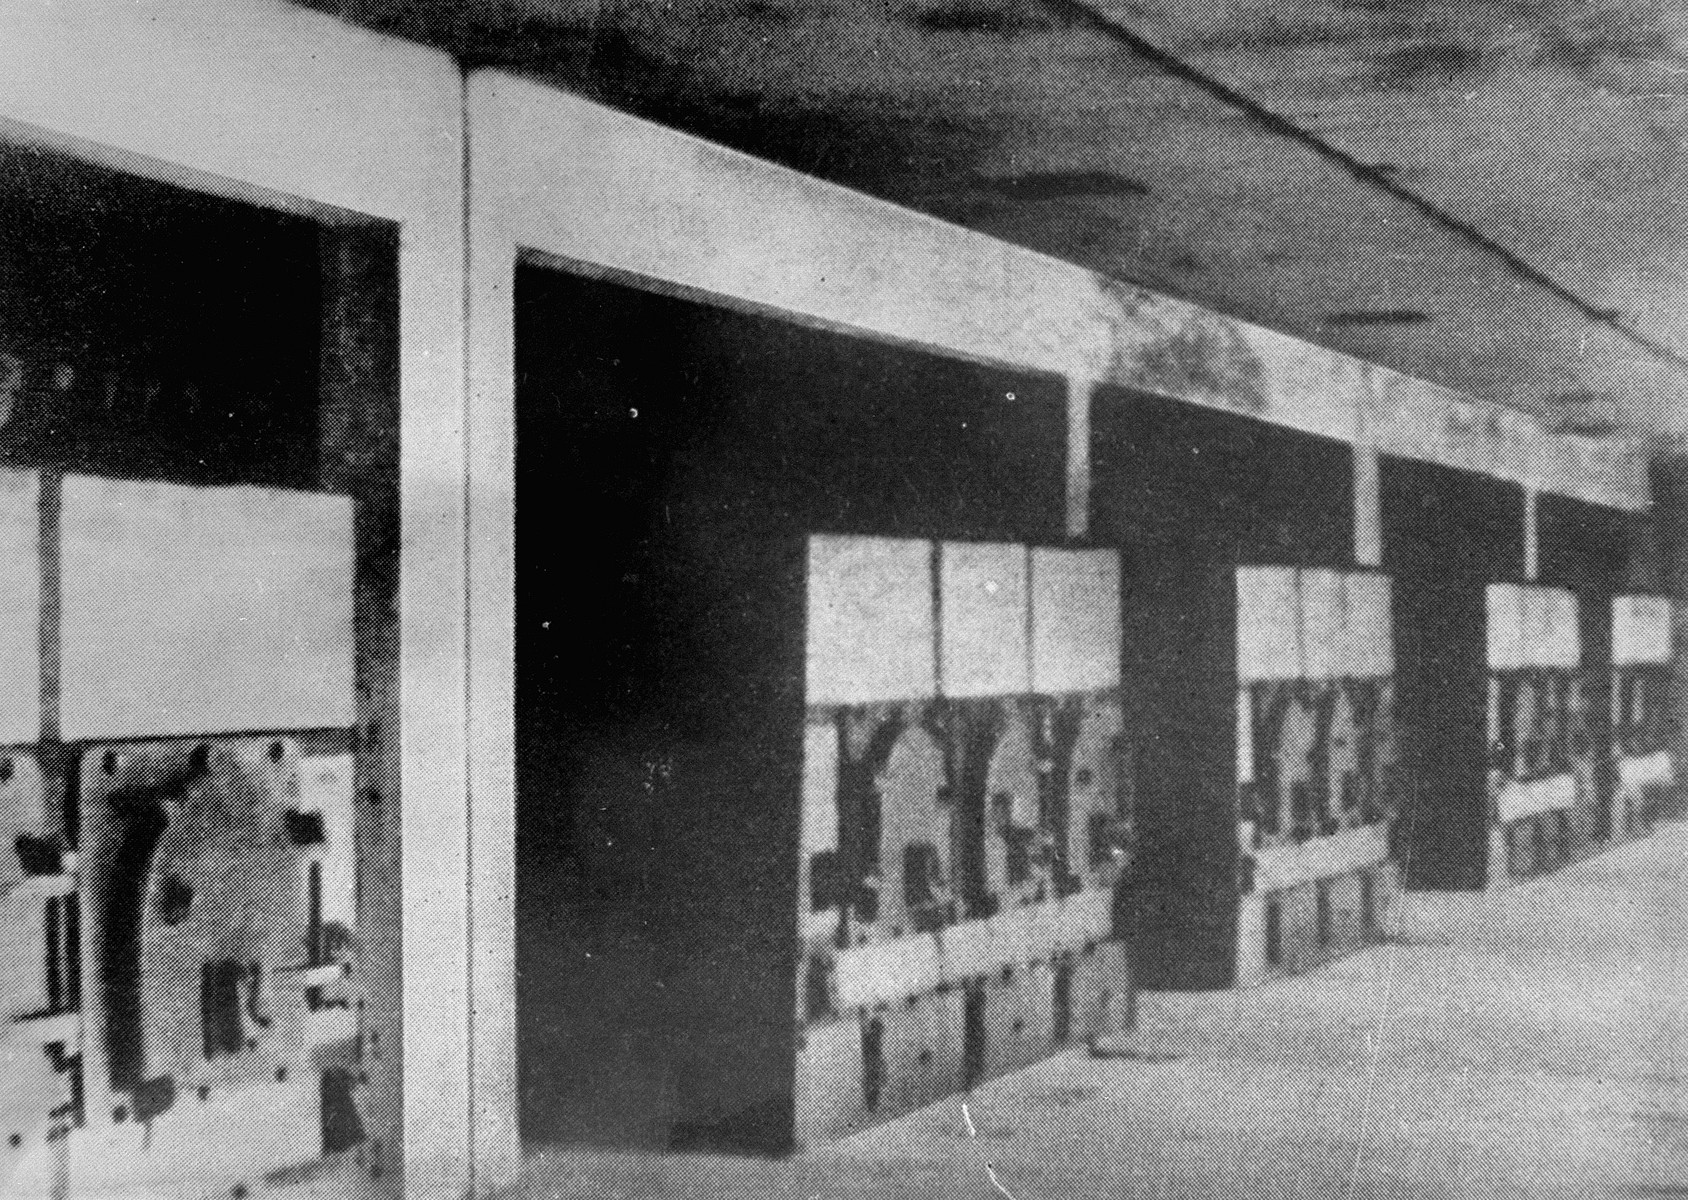 A row of ovens in one of the crematoria at Auschwitz.